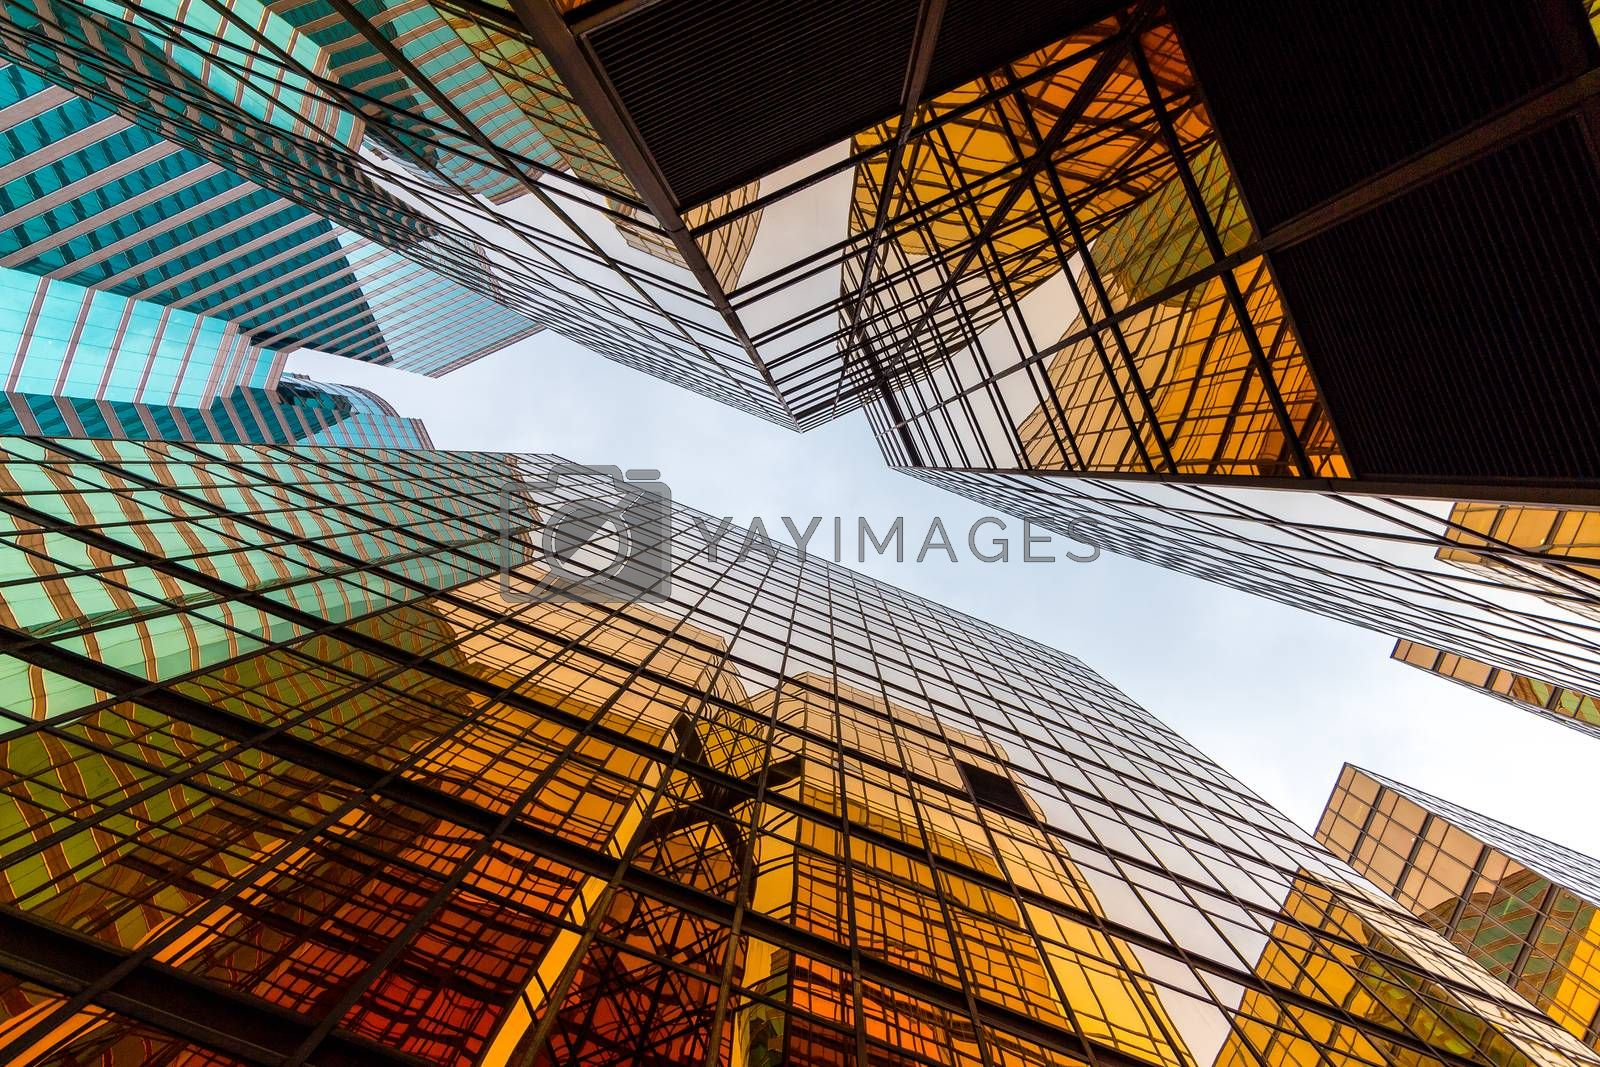 Royalty free image of Business building from low angle by leungchopan